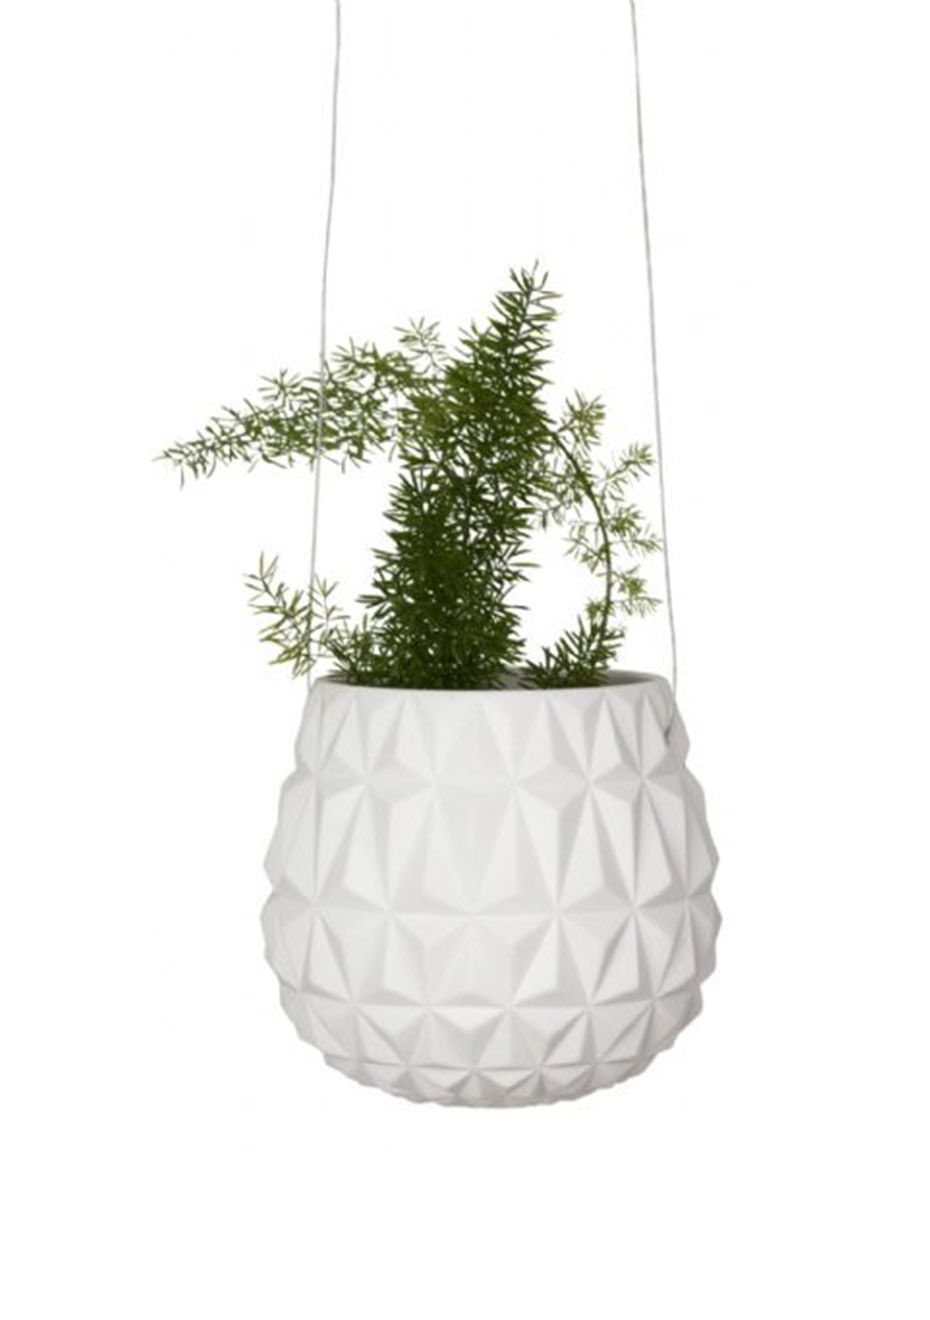 General Eclectic - Hanging Planter Triang